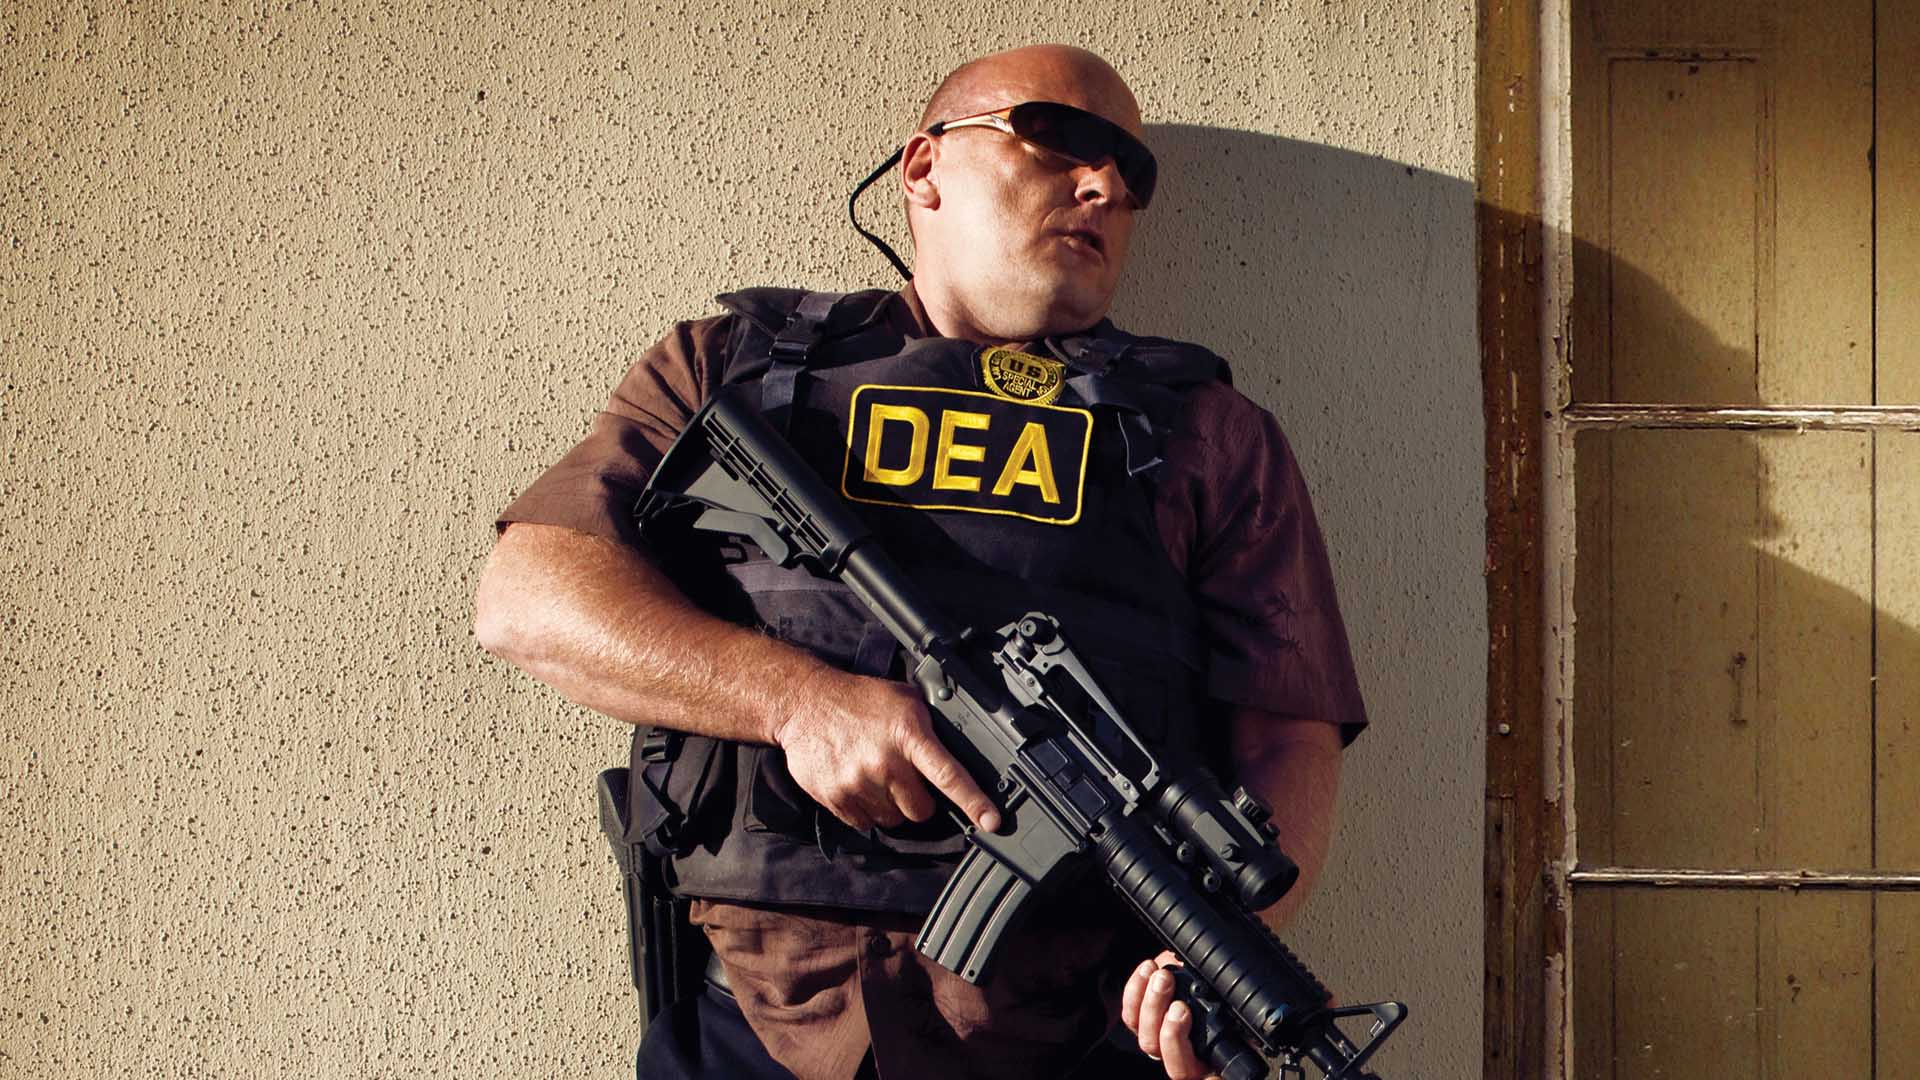 Video Extra - Breaking Bad - Dean Norris Trains for the DEA: Breaking Bad - AMC